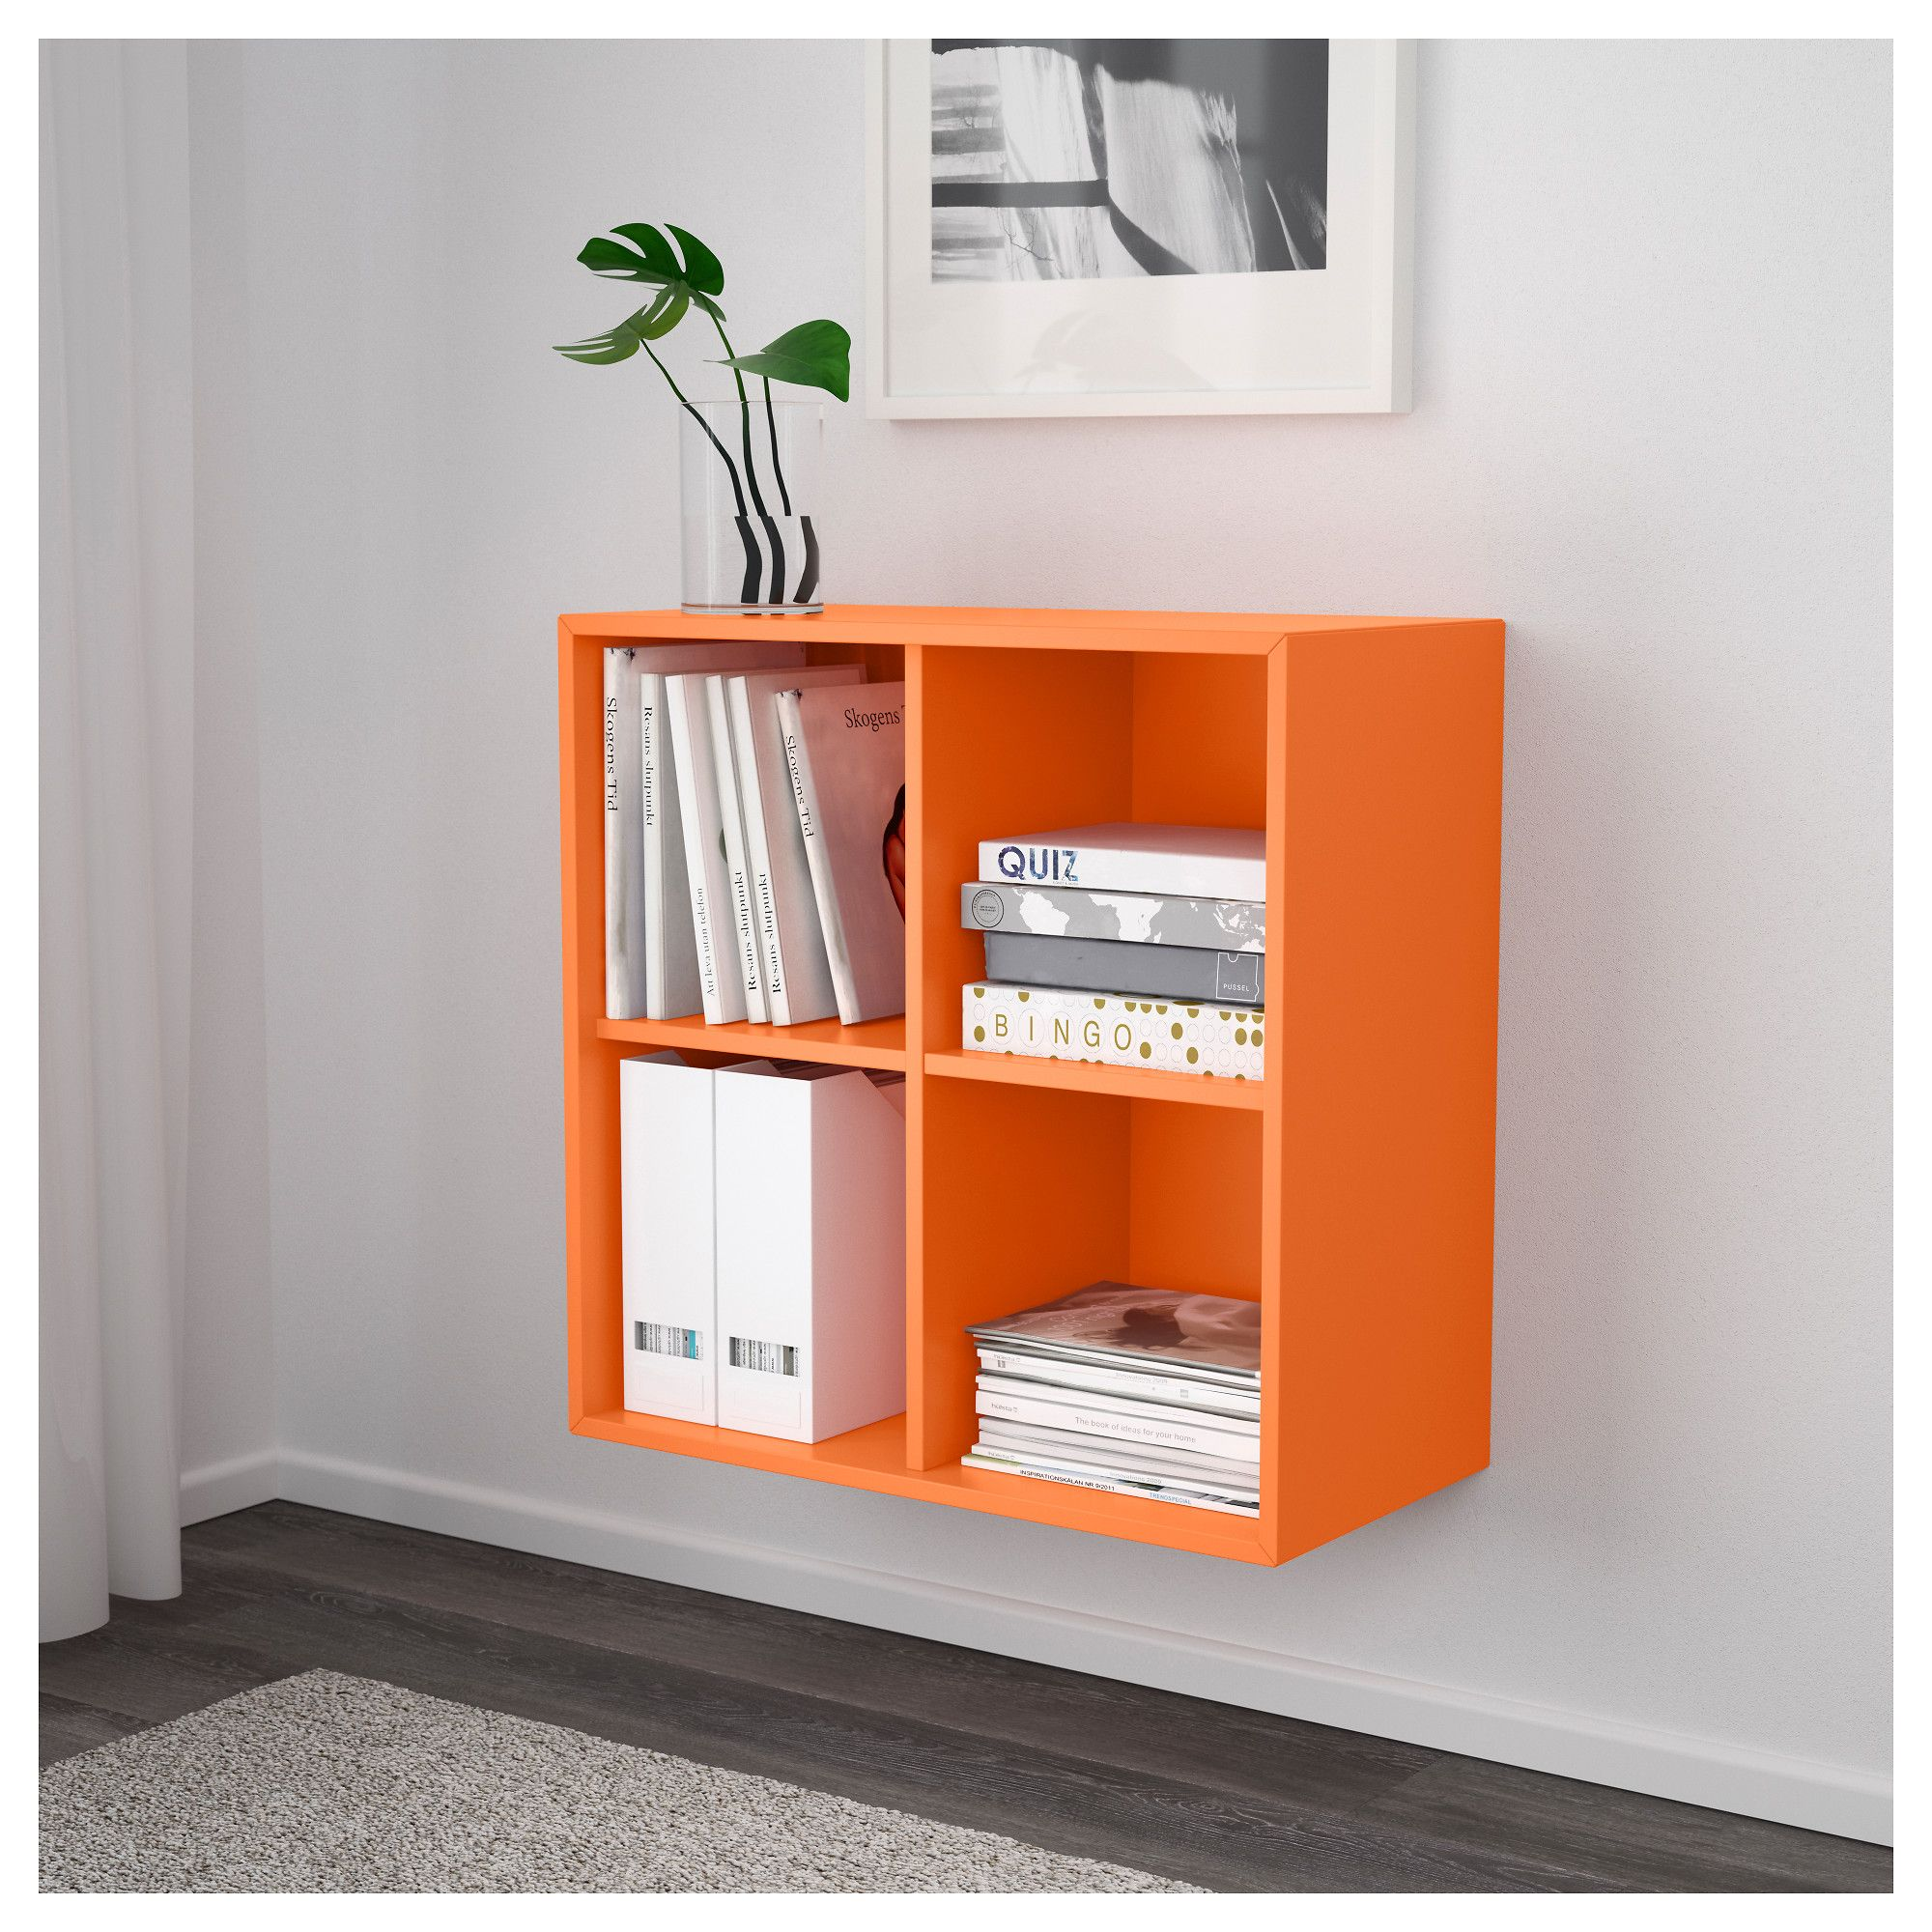 Ikea Expedit Orange Furniture And Home Furnishings In 2019 Kitchen Ideas Wall